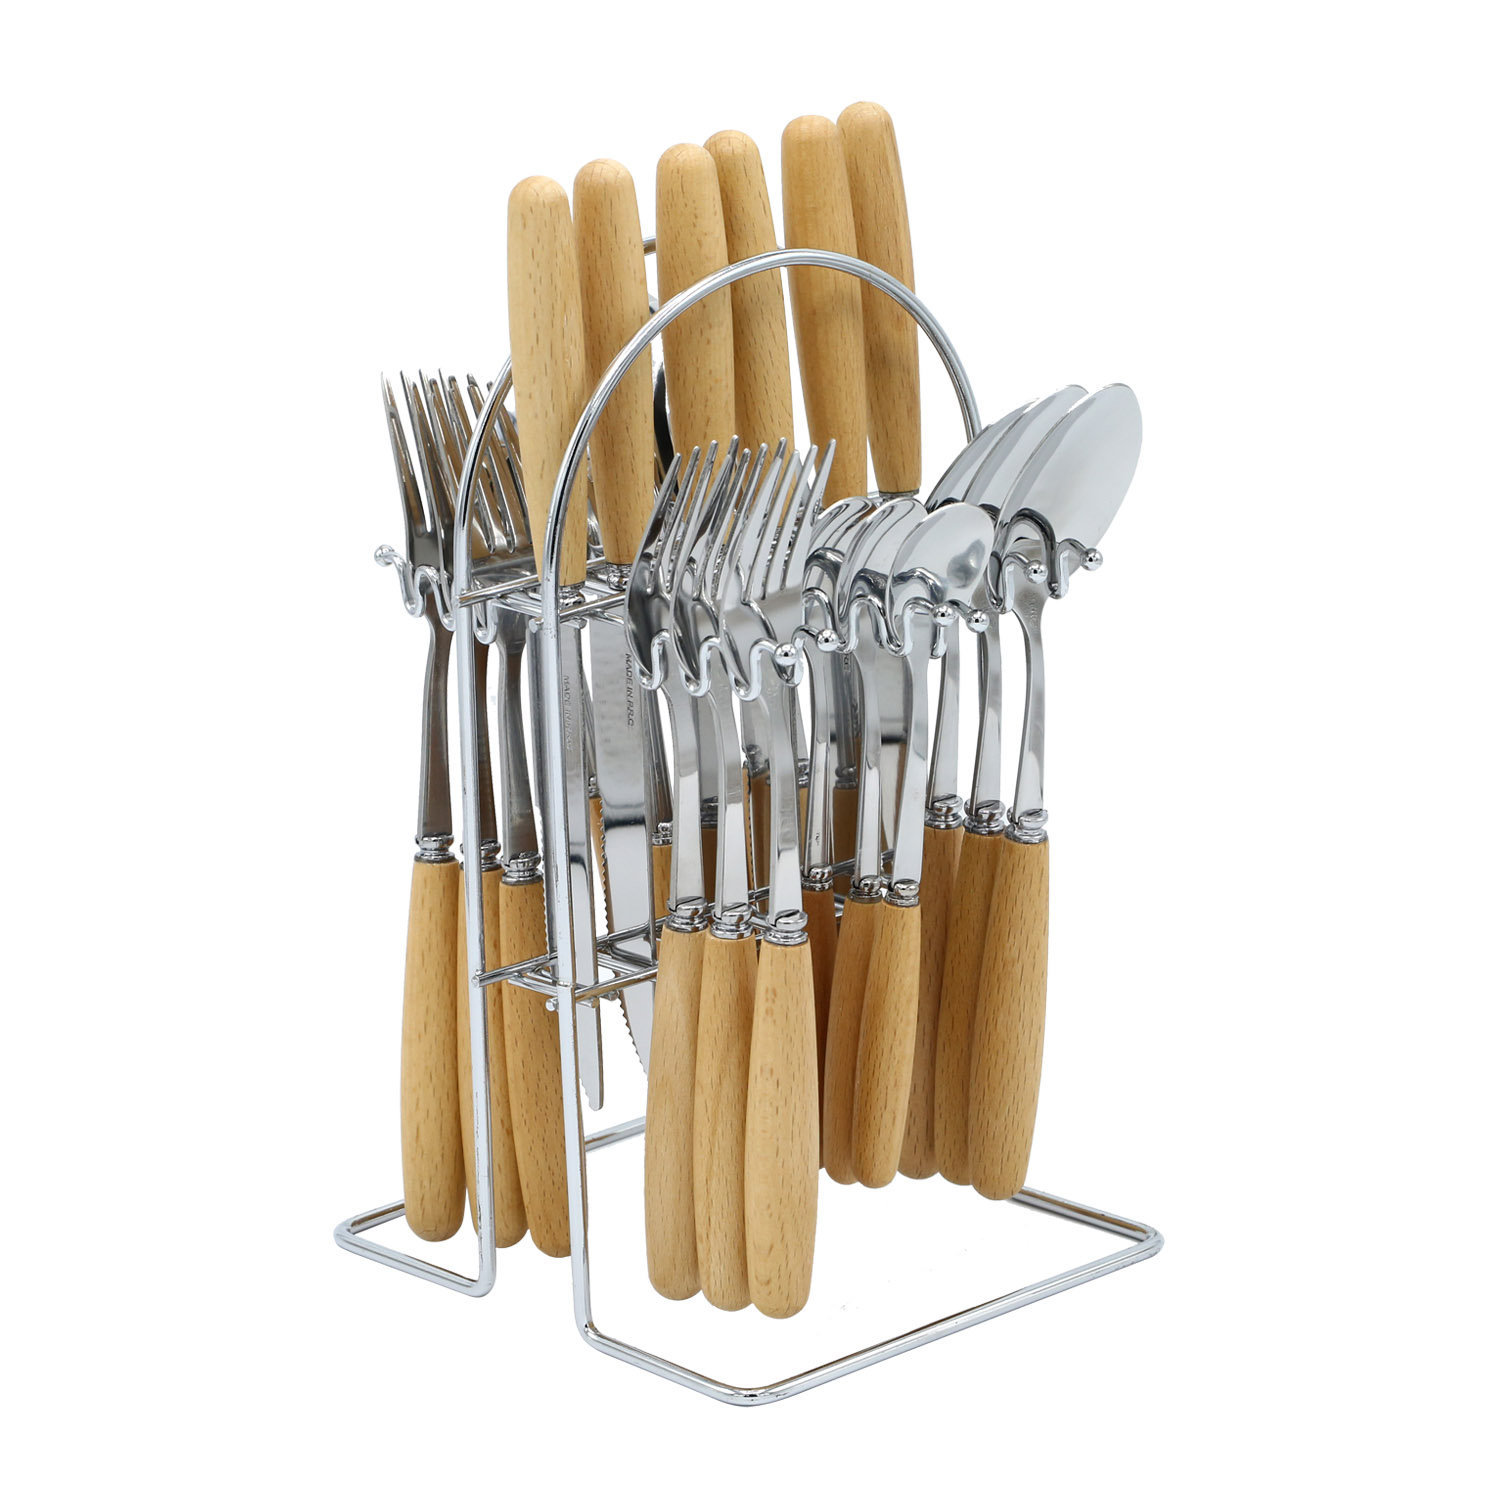 Yes House S-S Cutlery Set Brown 24pcs P-2499